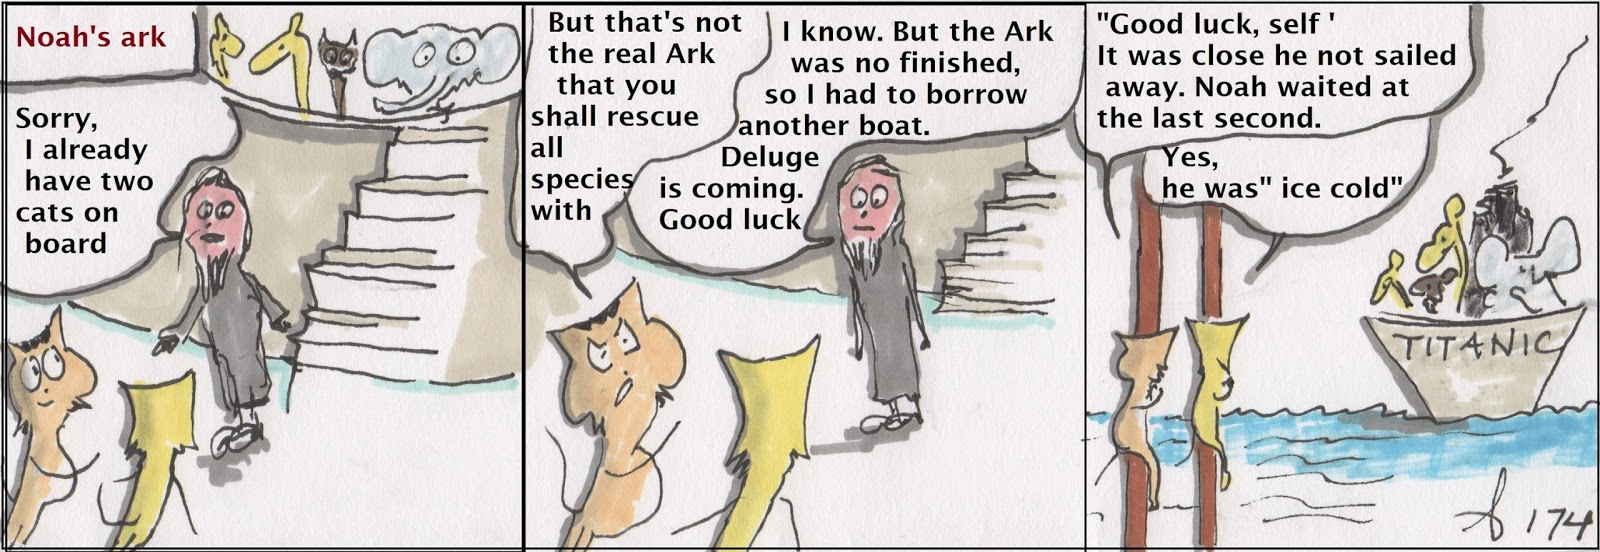 noah's ark animal shelter - 1600×552